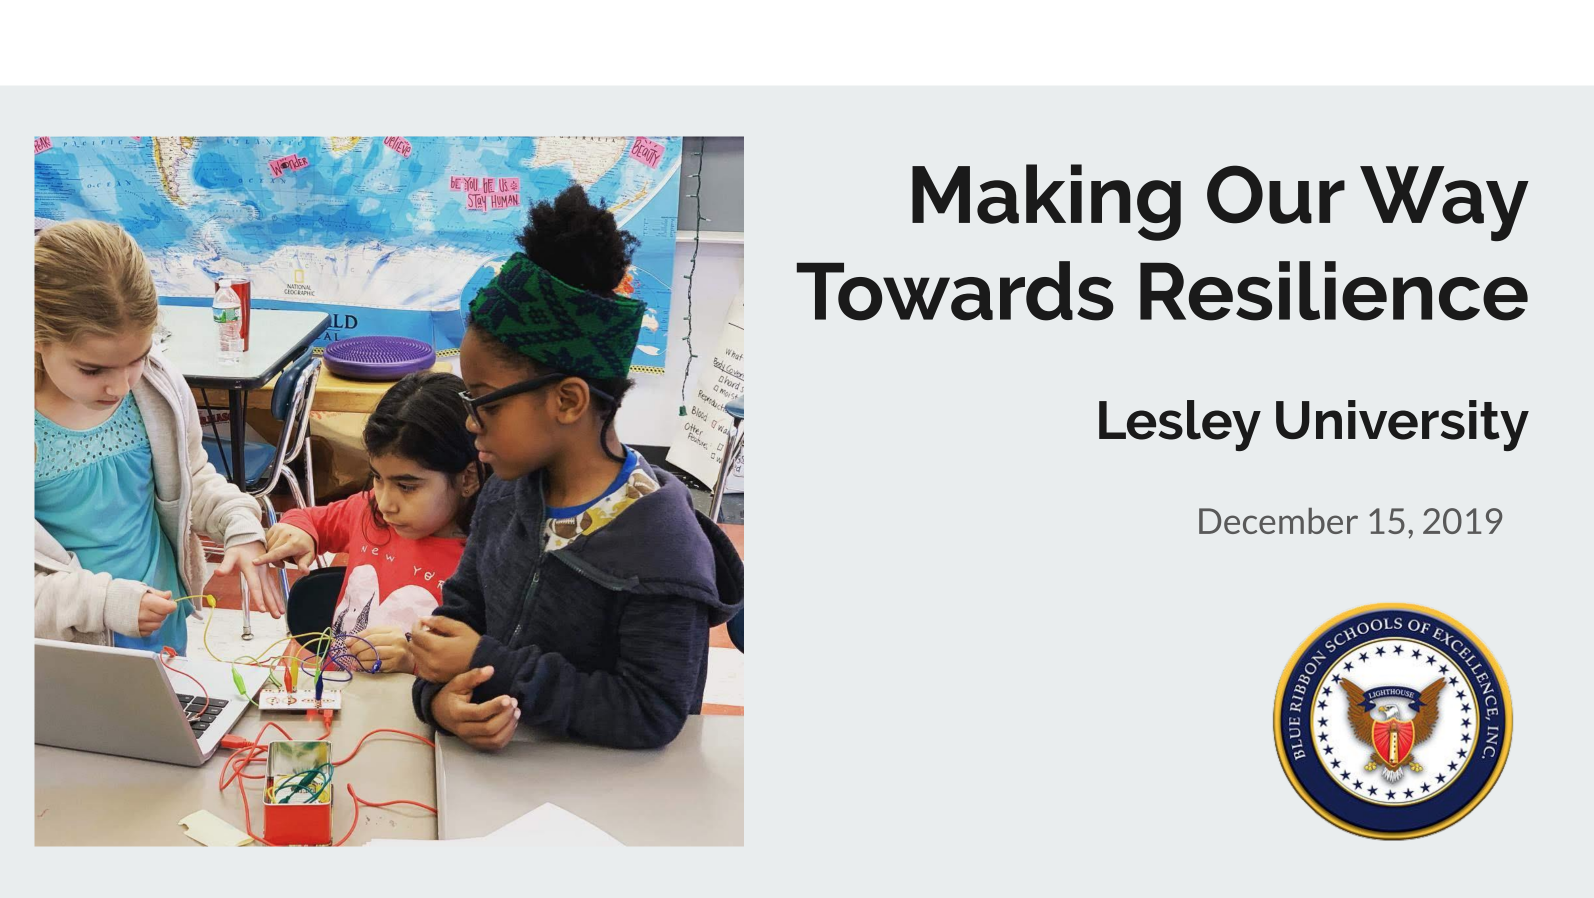 Making Our Way Towards Resilience Slideshow